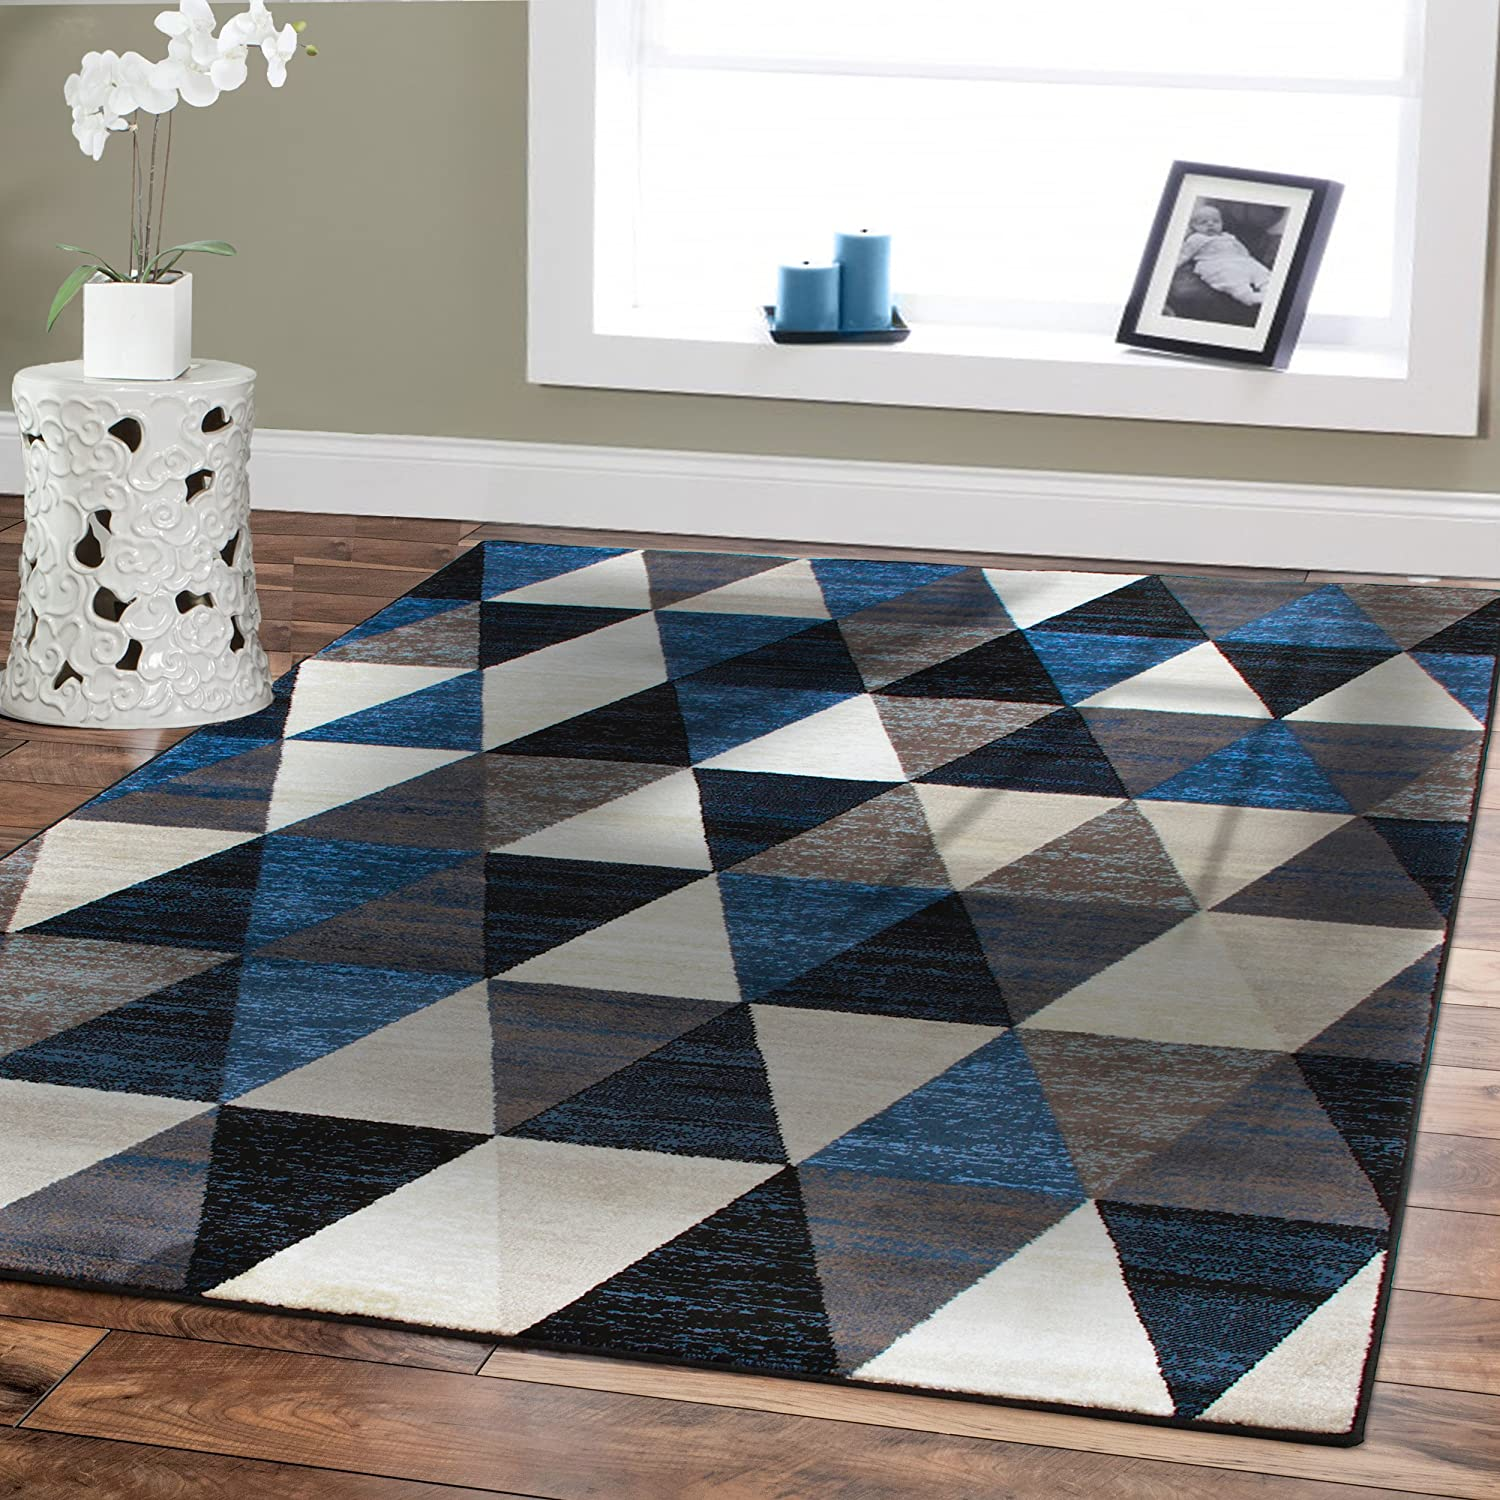 Amazon Premium Runner Rugs For Hallways Triangle Pattern 2x8 Runners Beige Cream Navy Blue Black Narrow 2x7 Rug Fashion Washable